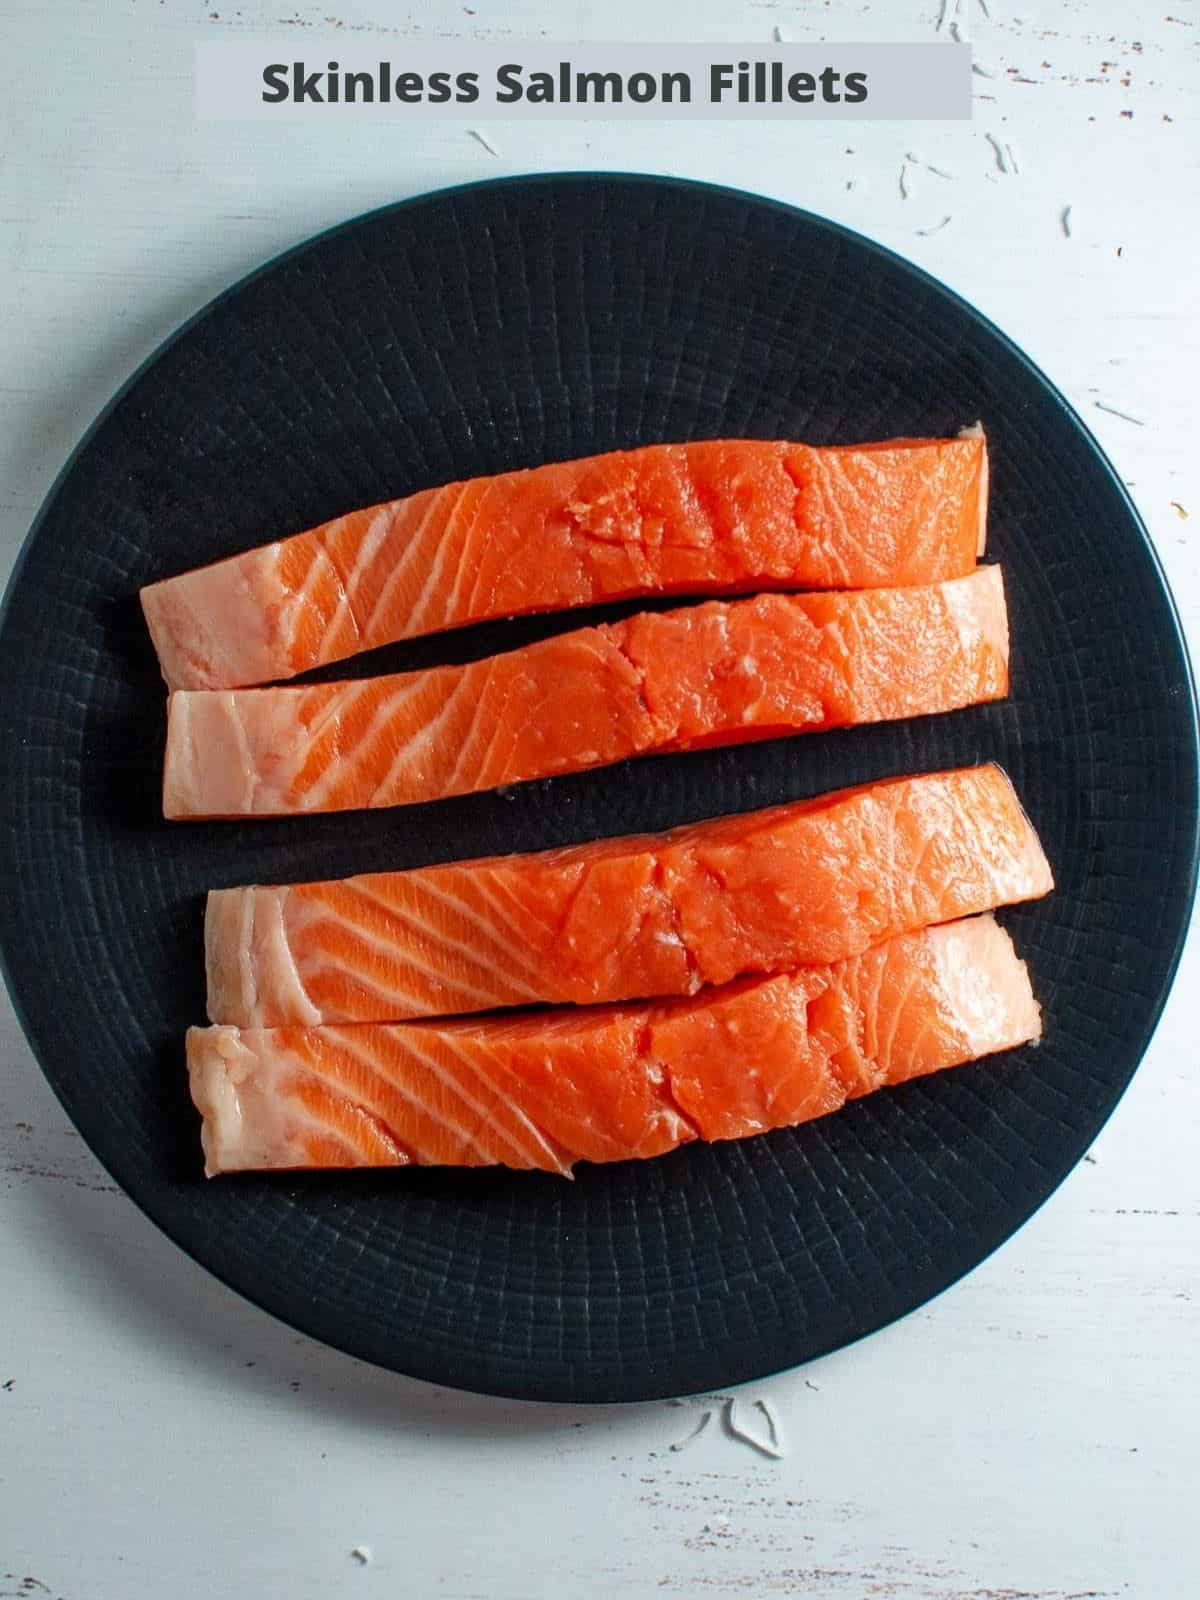 four skinless salmon fillets on a black plate